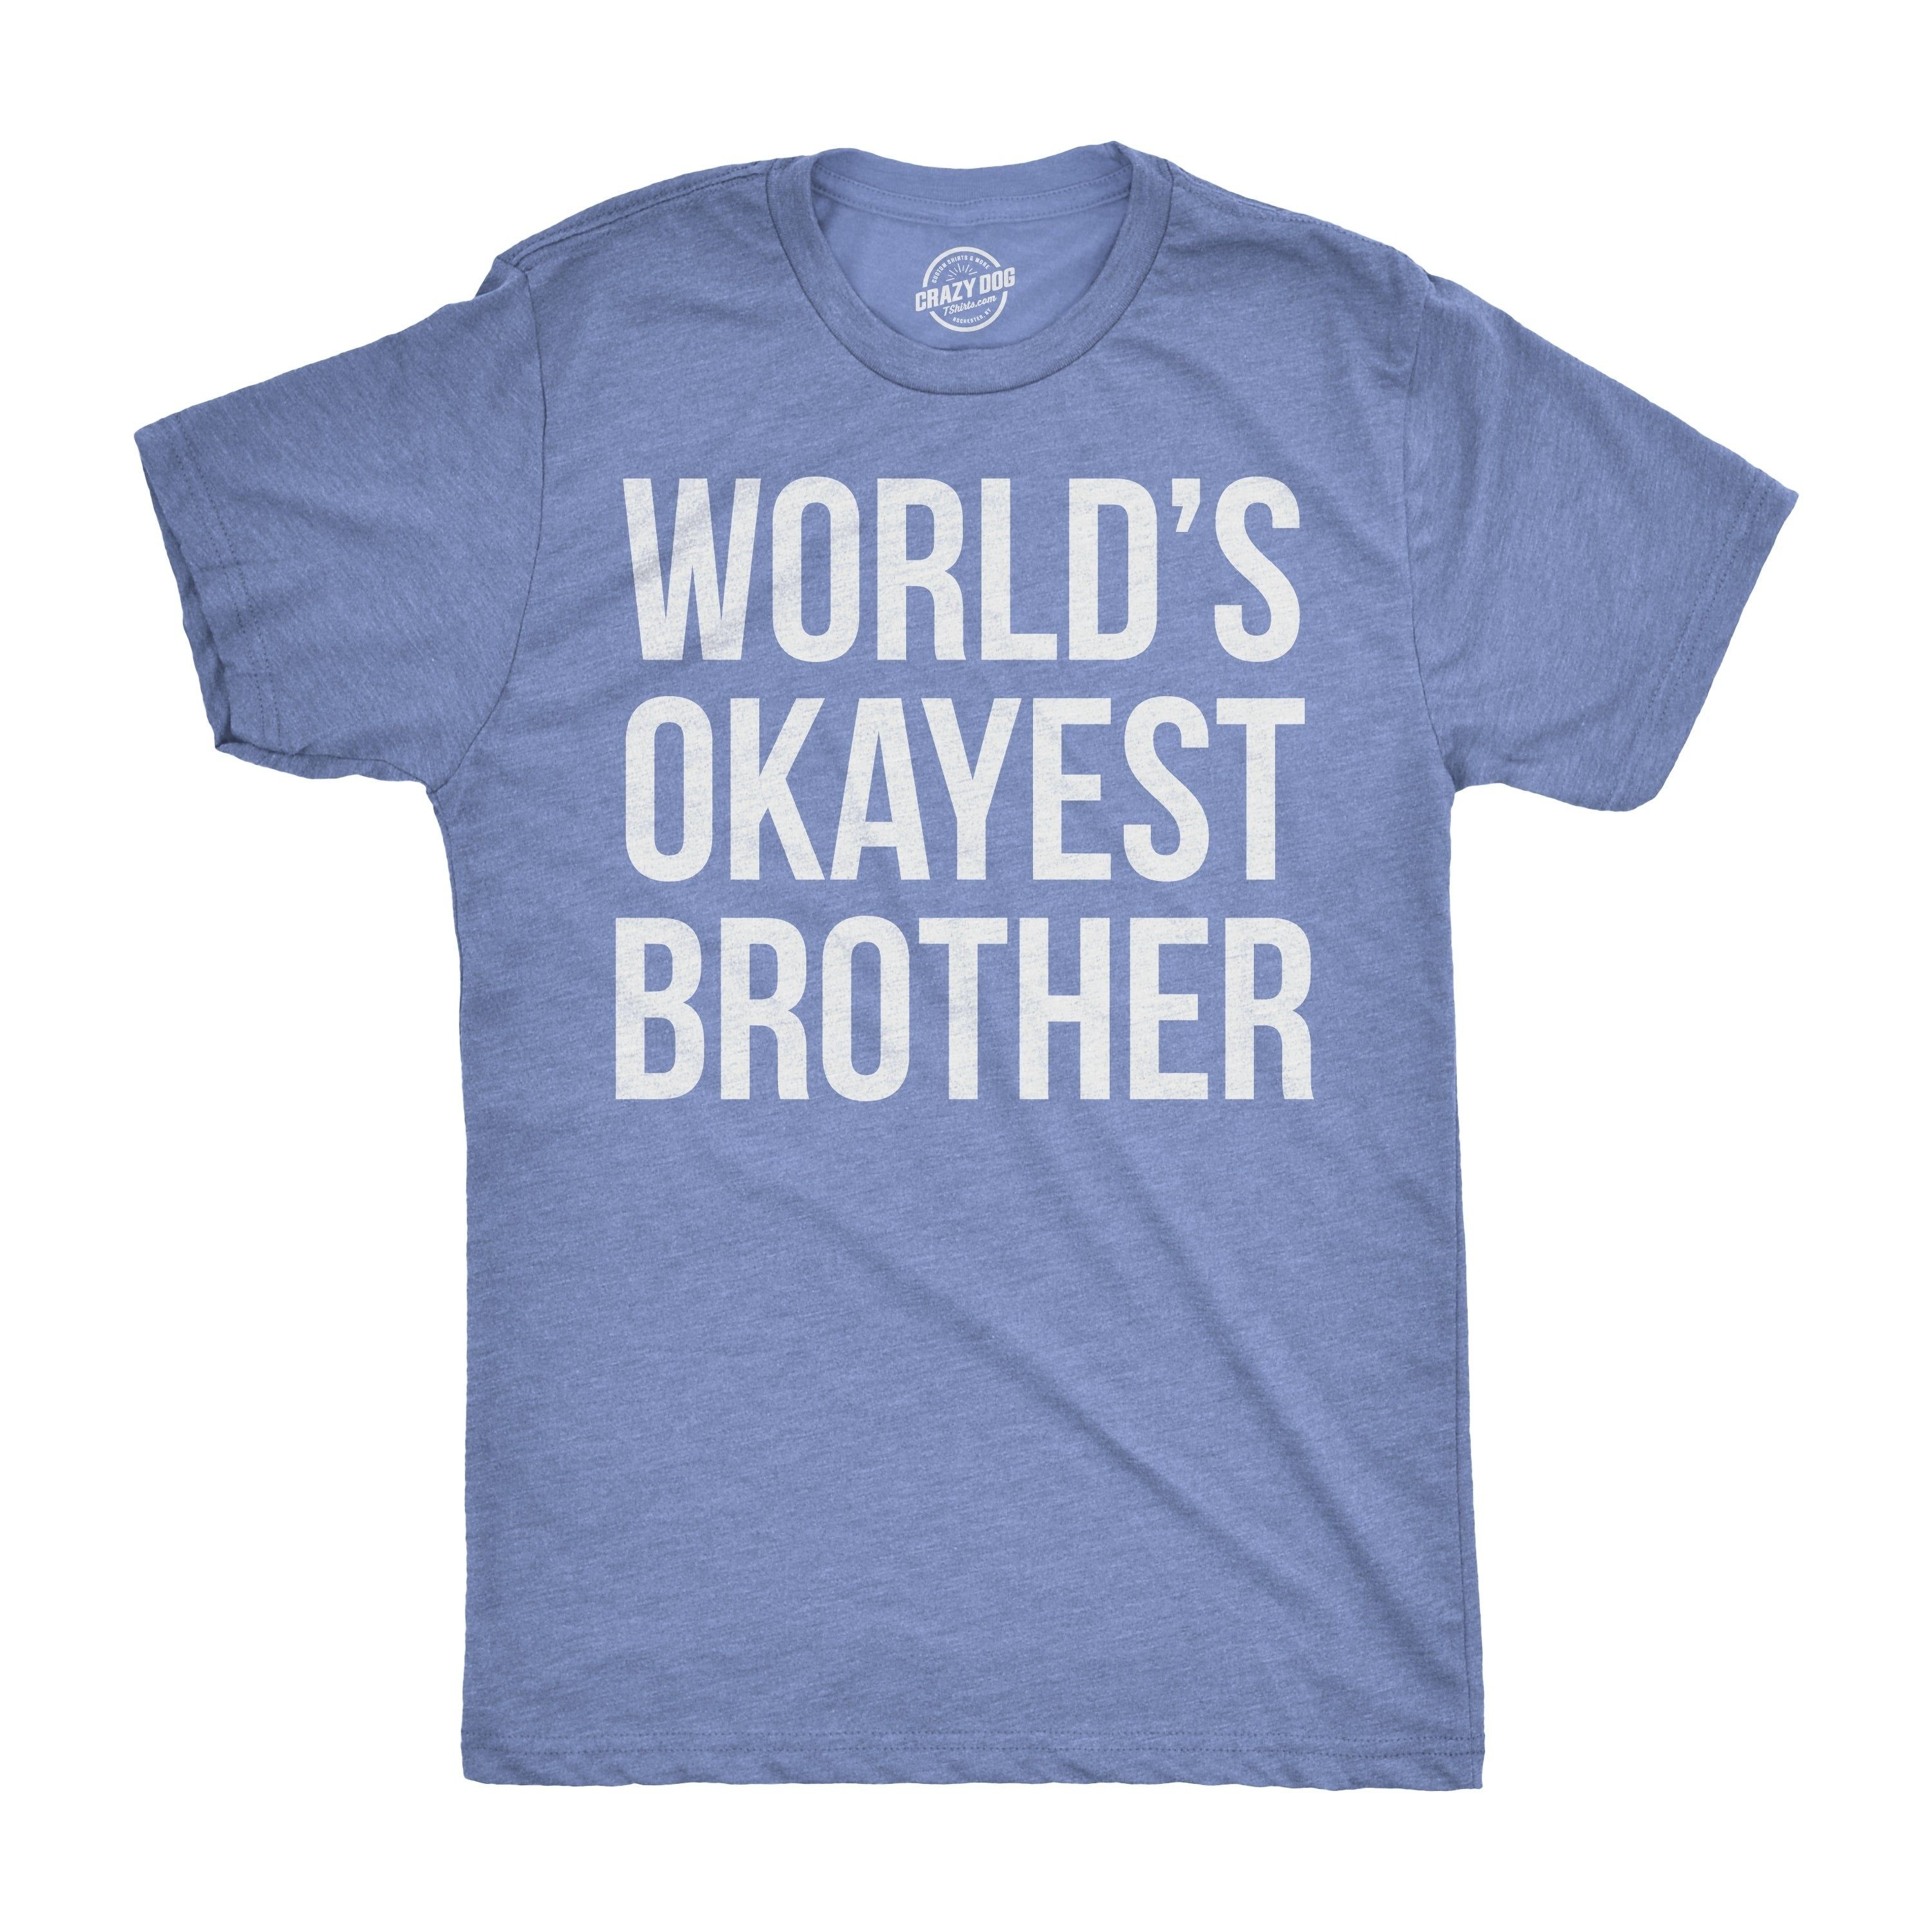 Gifts for boys son teens birthday gift ideas Worlds Okayest Brother T-Shirt